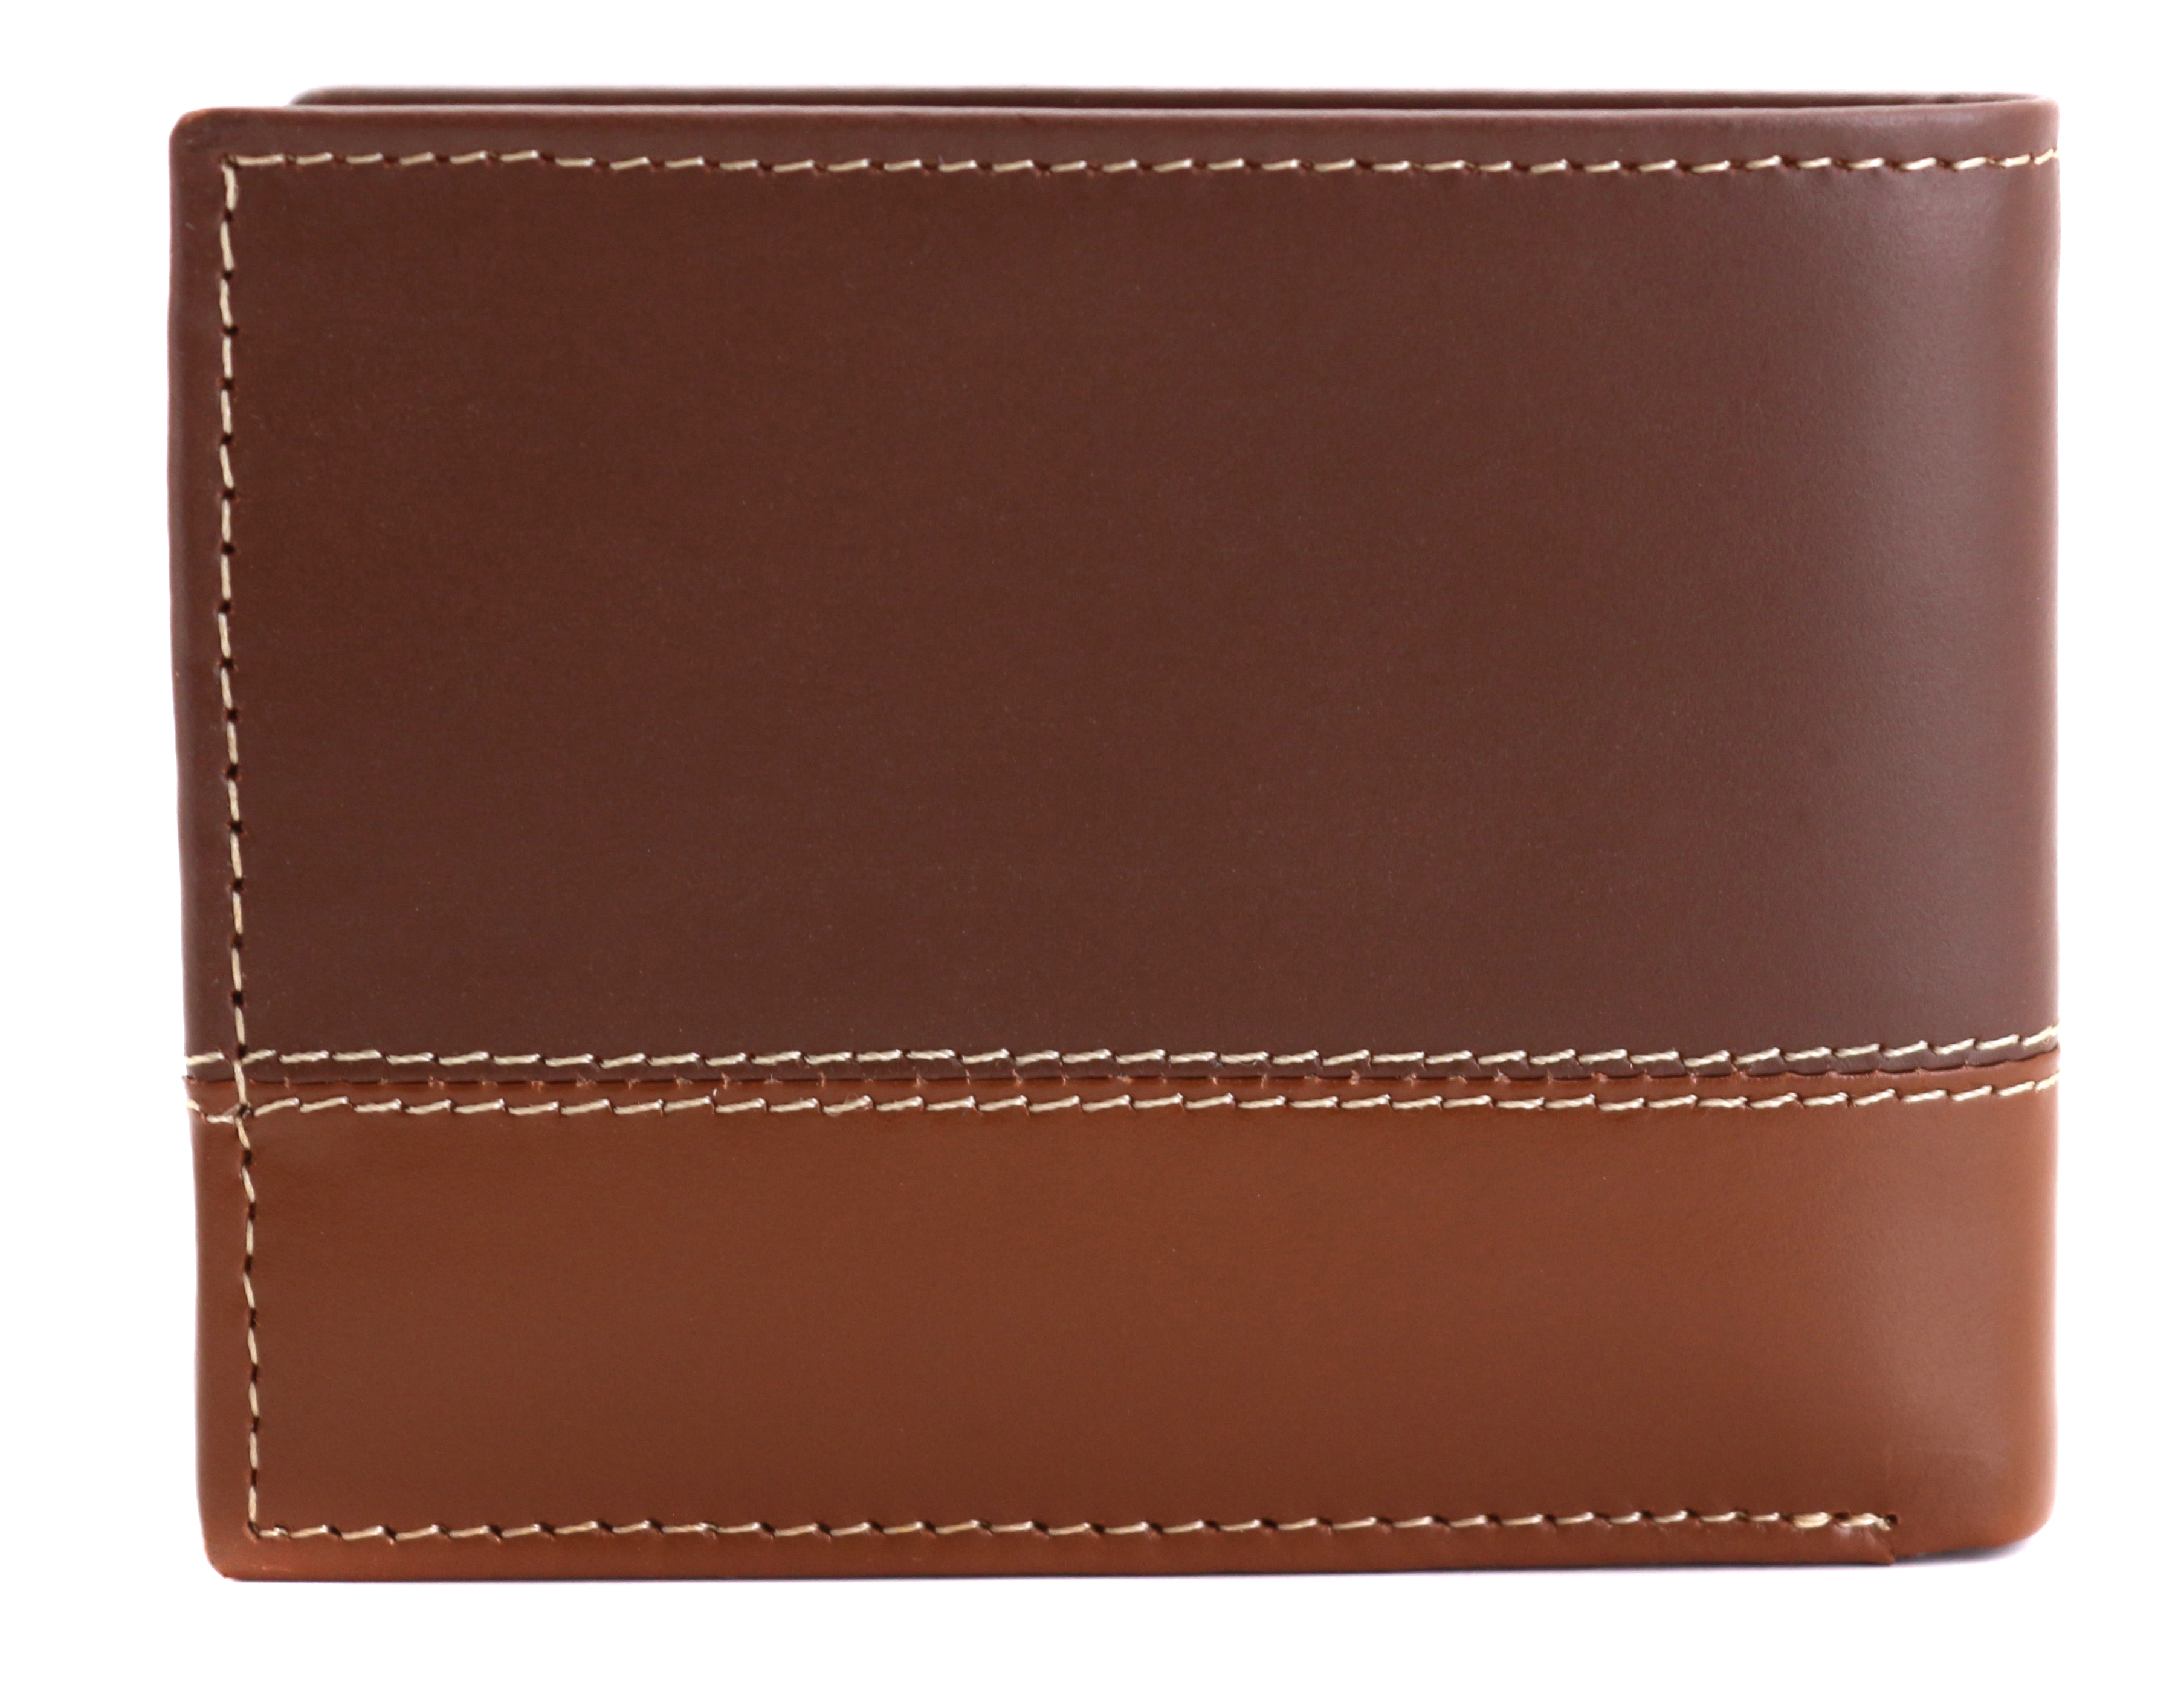 Timberland-Men-039-s-Genuine-Two-Tone-Leather-Credit-Card-Billfold-Commuter-Wallet thumbnail 39